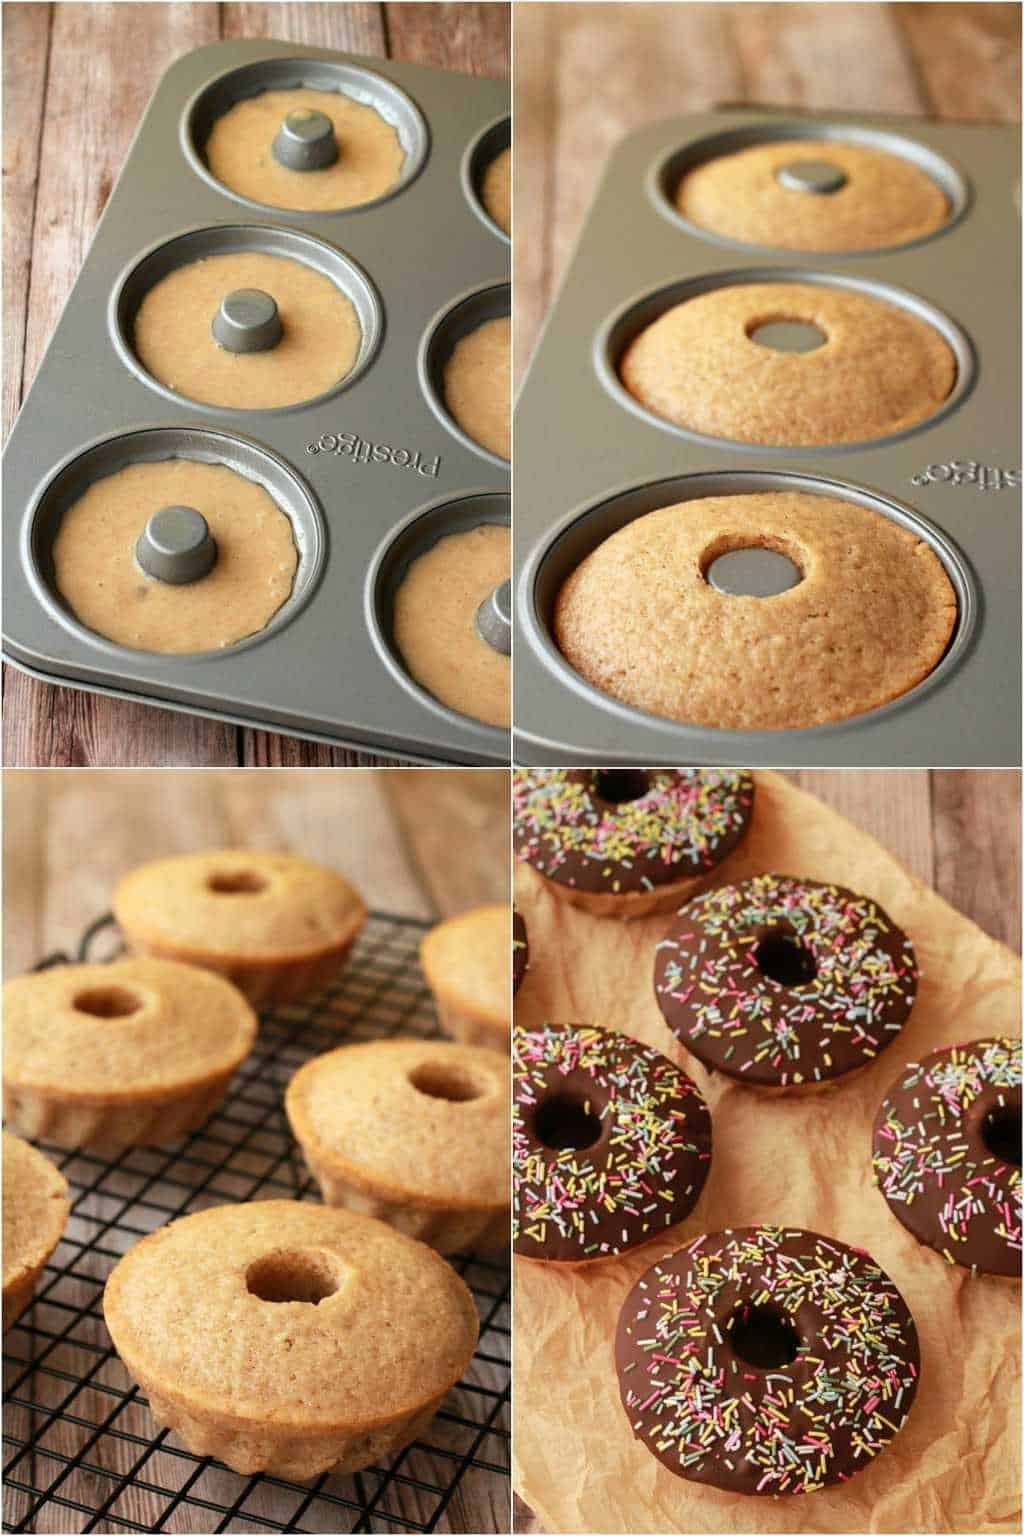 Step by step process photo collage of making vegan donuts.